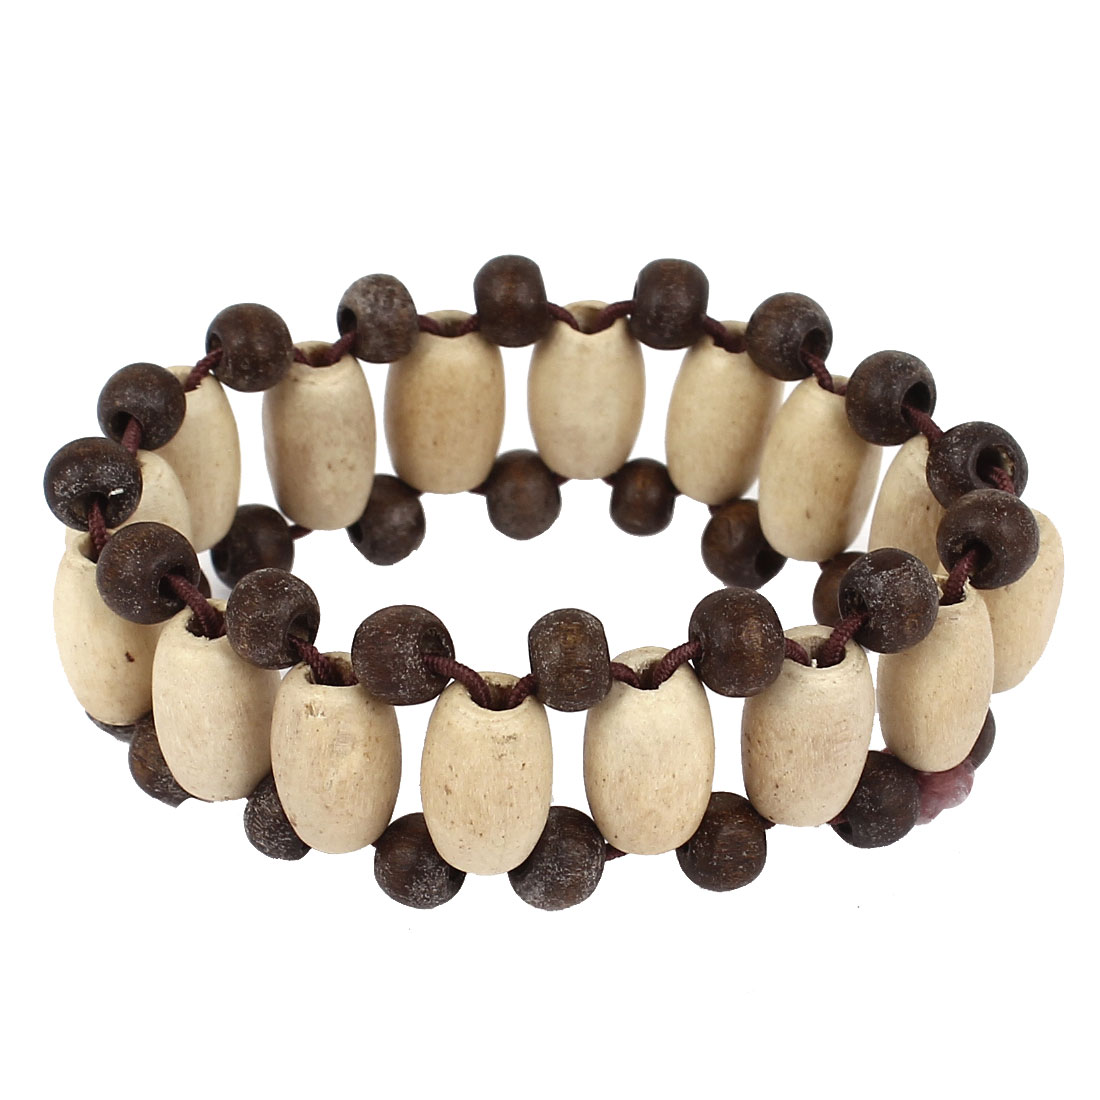 Woman Wooden Beads Ornament Elastic Wrist Chain Bracelet Bangle Beige Gray